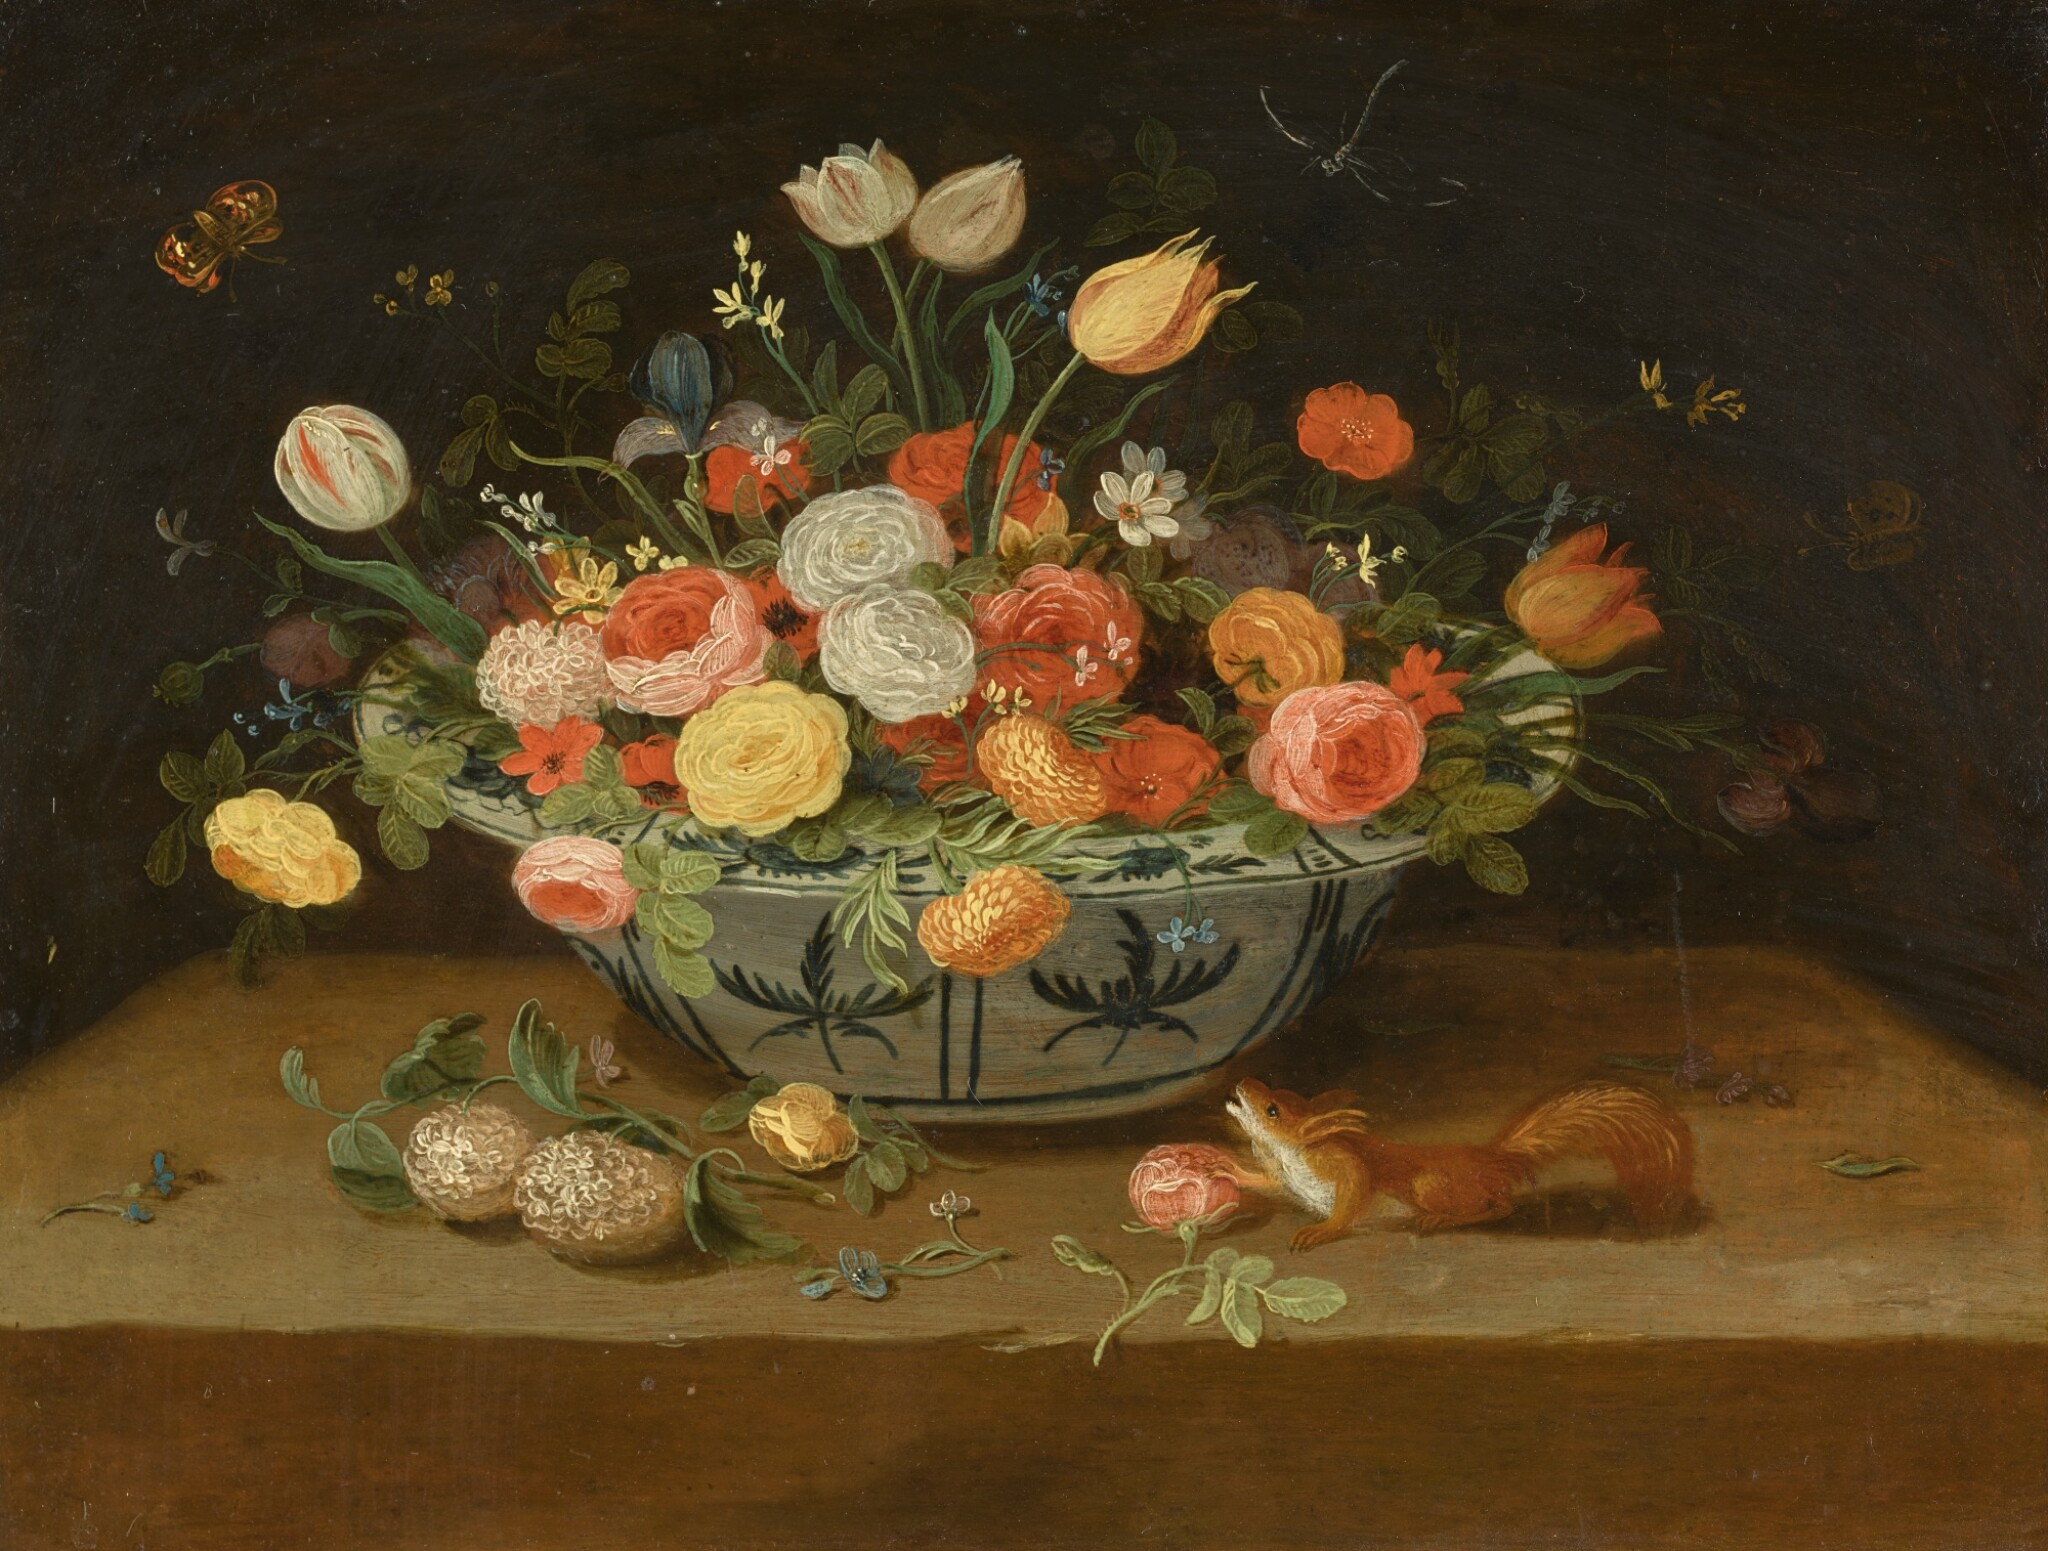 View full screen - View 1 of Lot 142. PSEUDO-JAN VAN KESSEL II | A still life of flowers in a porcelain bowl and a squirrel on a stone ledge.